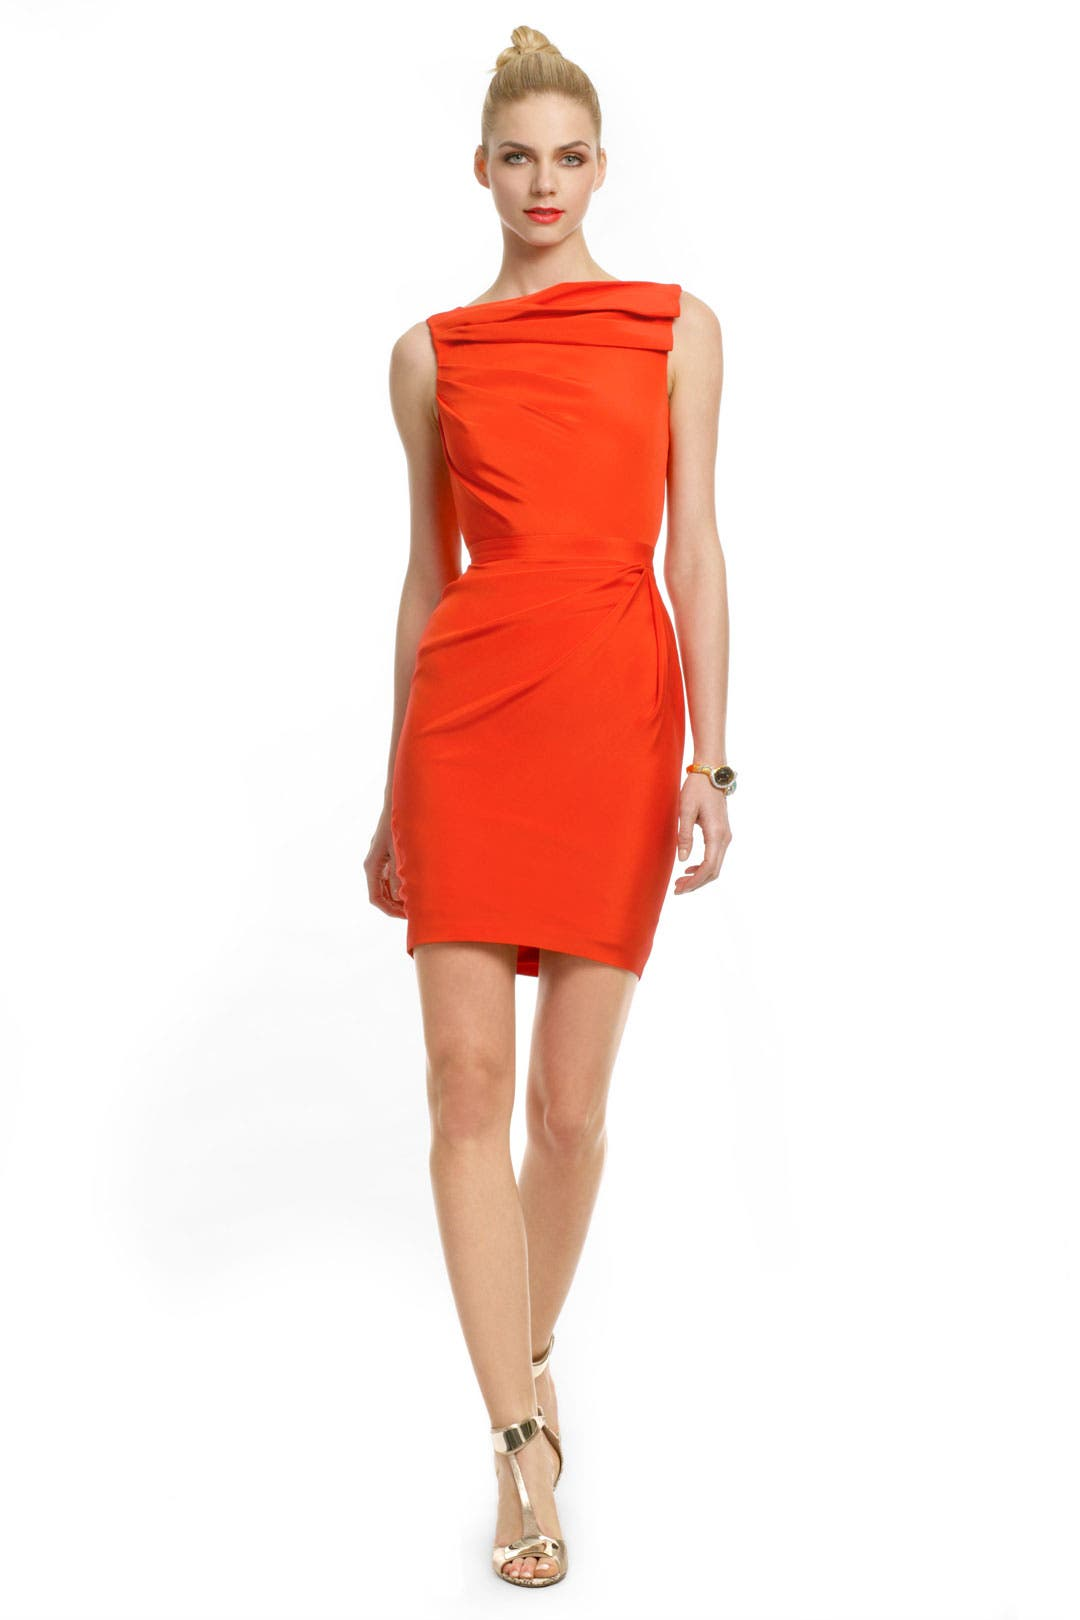 Taking Over Sheath by Christian Siriano